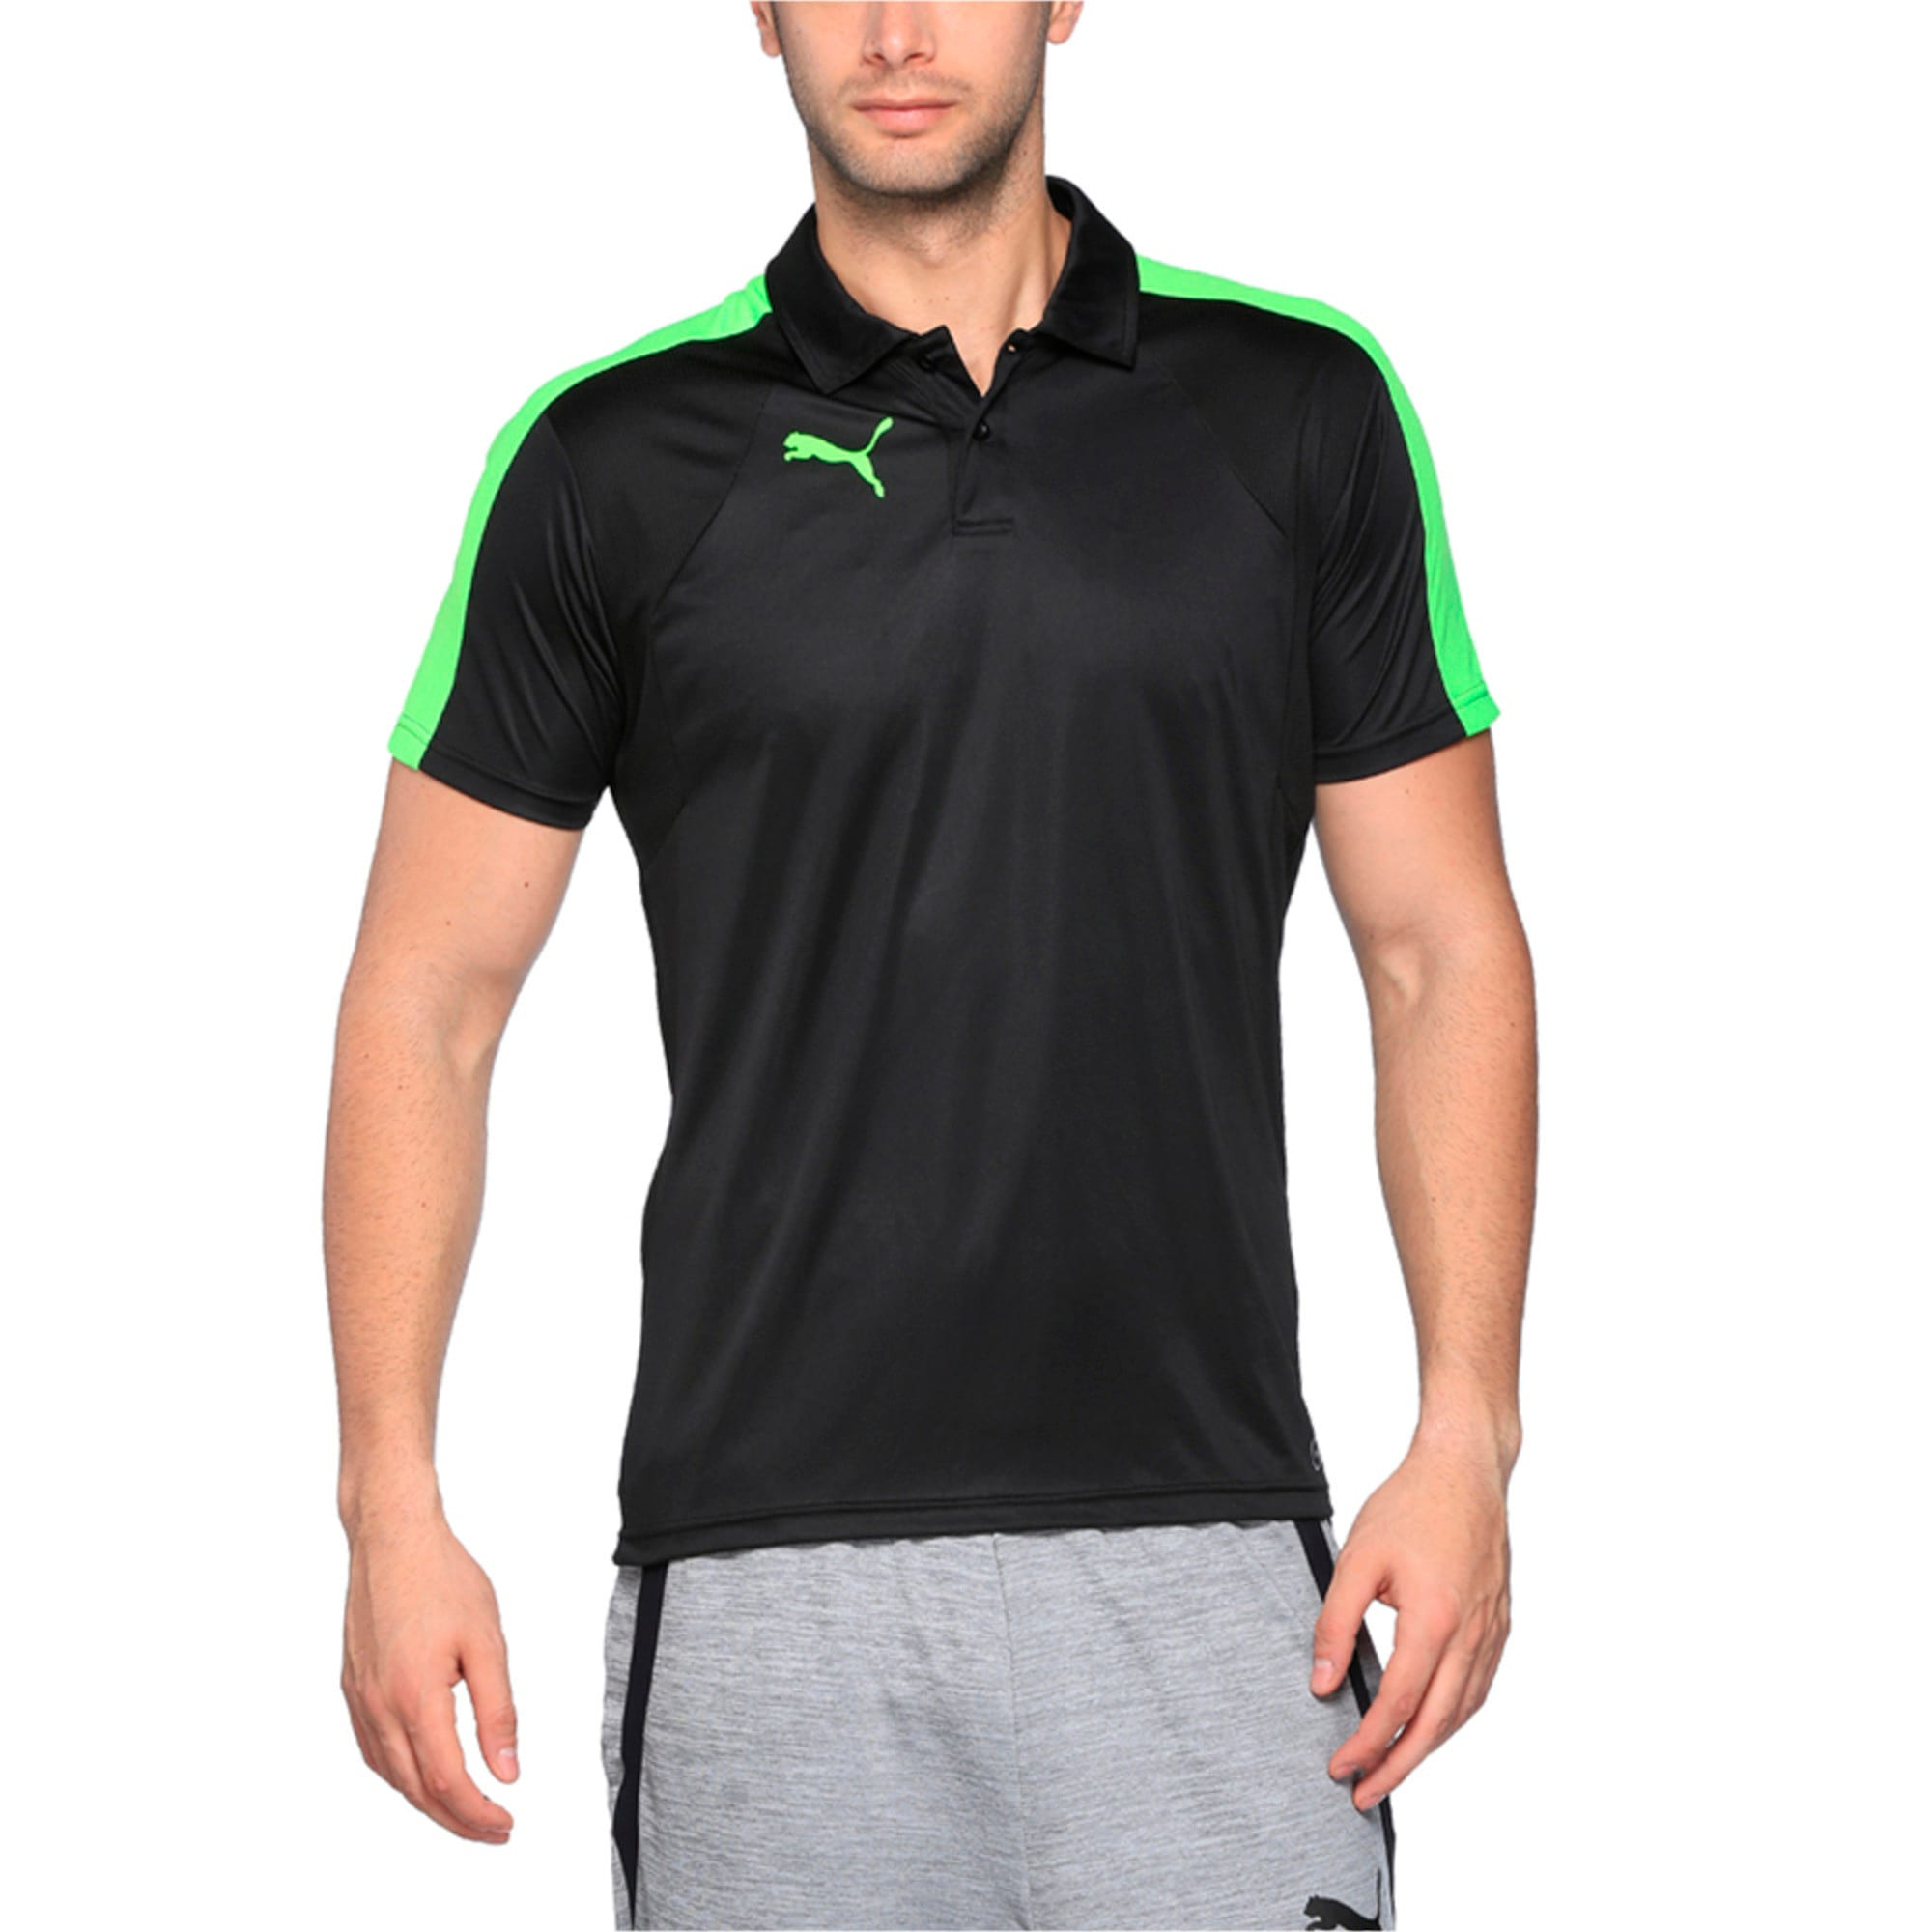 Thumbnail 1 of IT evoTRG Polo, Puma Black-Green Gecko, medium-IND